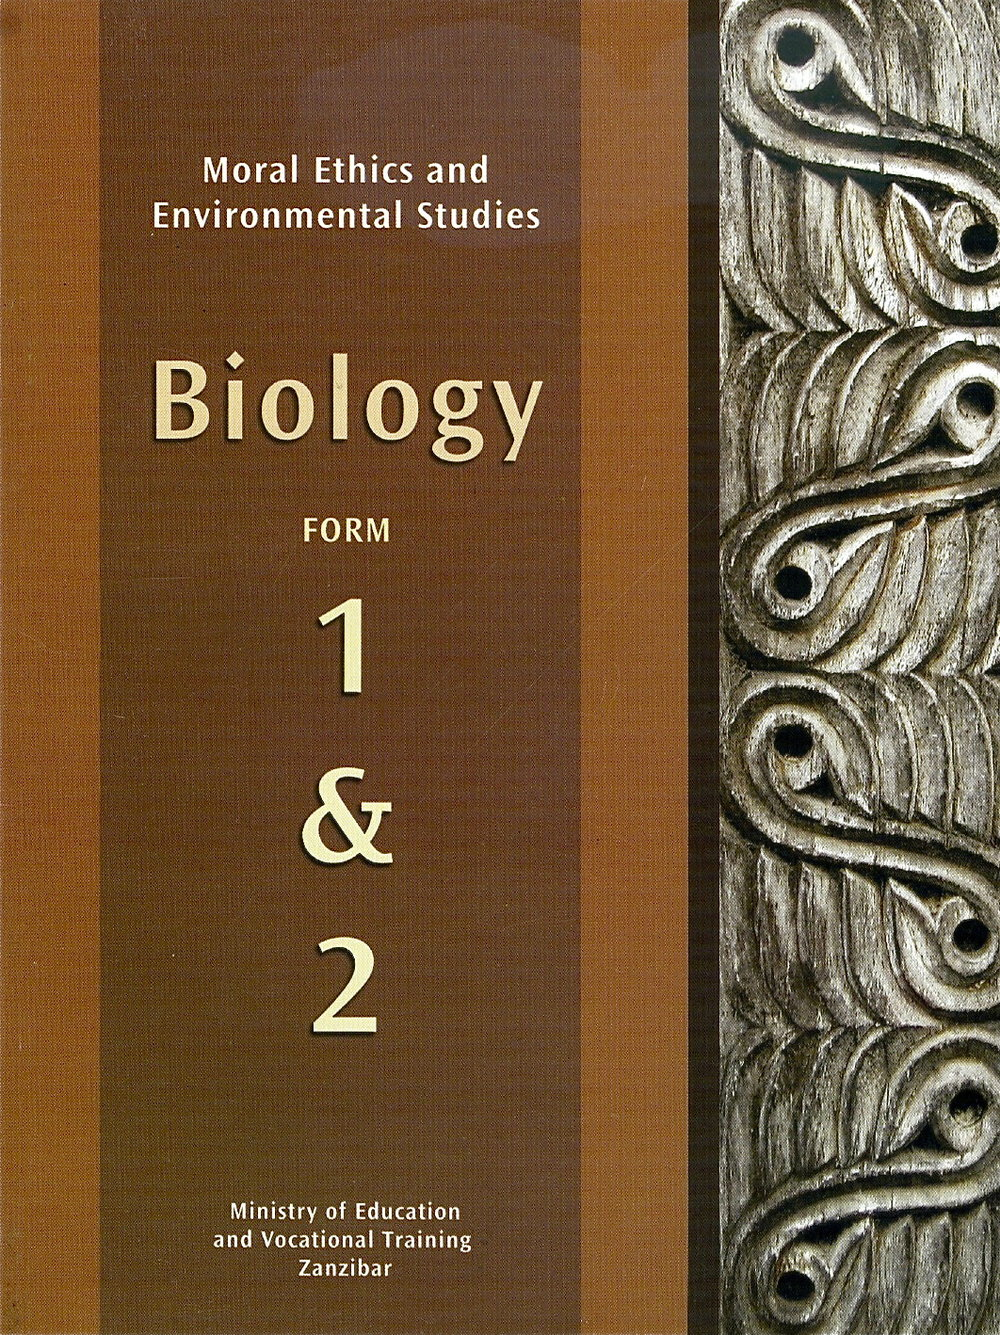 Biology Curriculum, Forms 1 & 2 . Author. (Ministry of Education, Zanzibar, 2007).